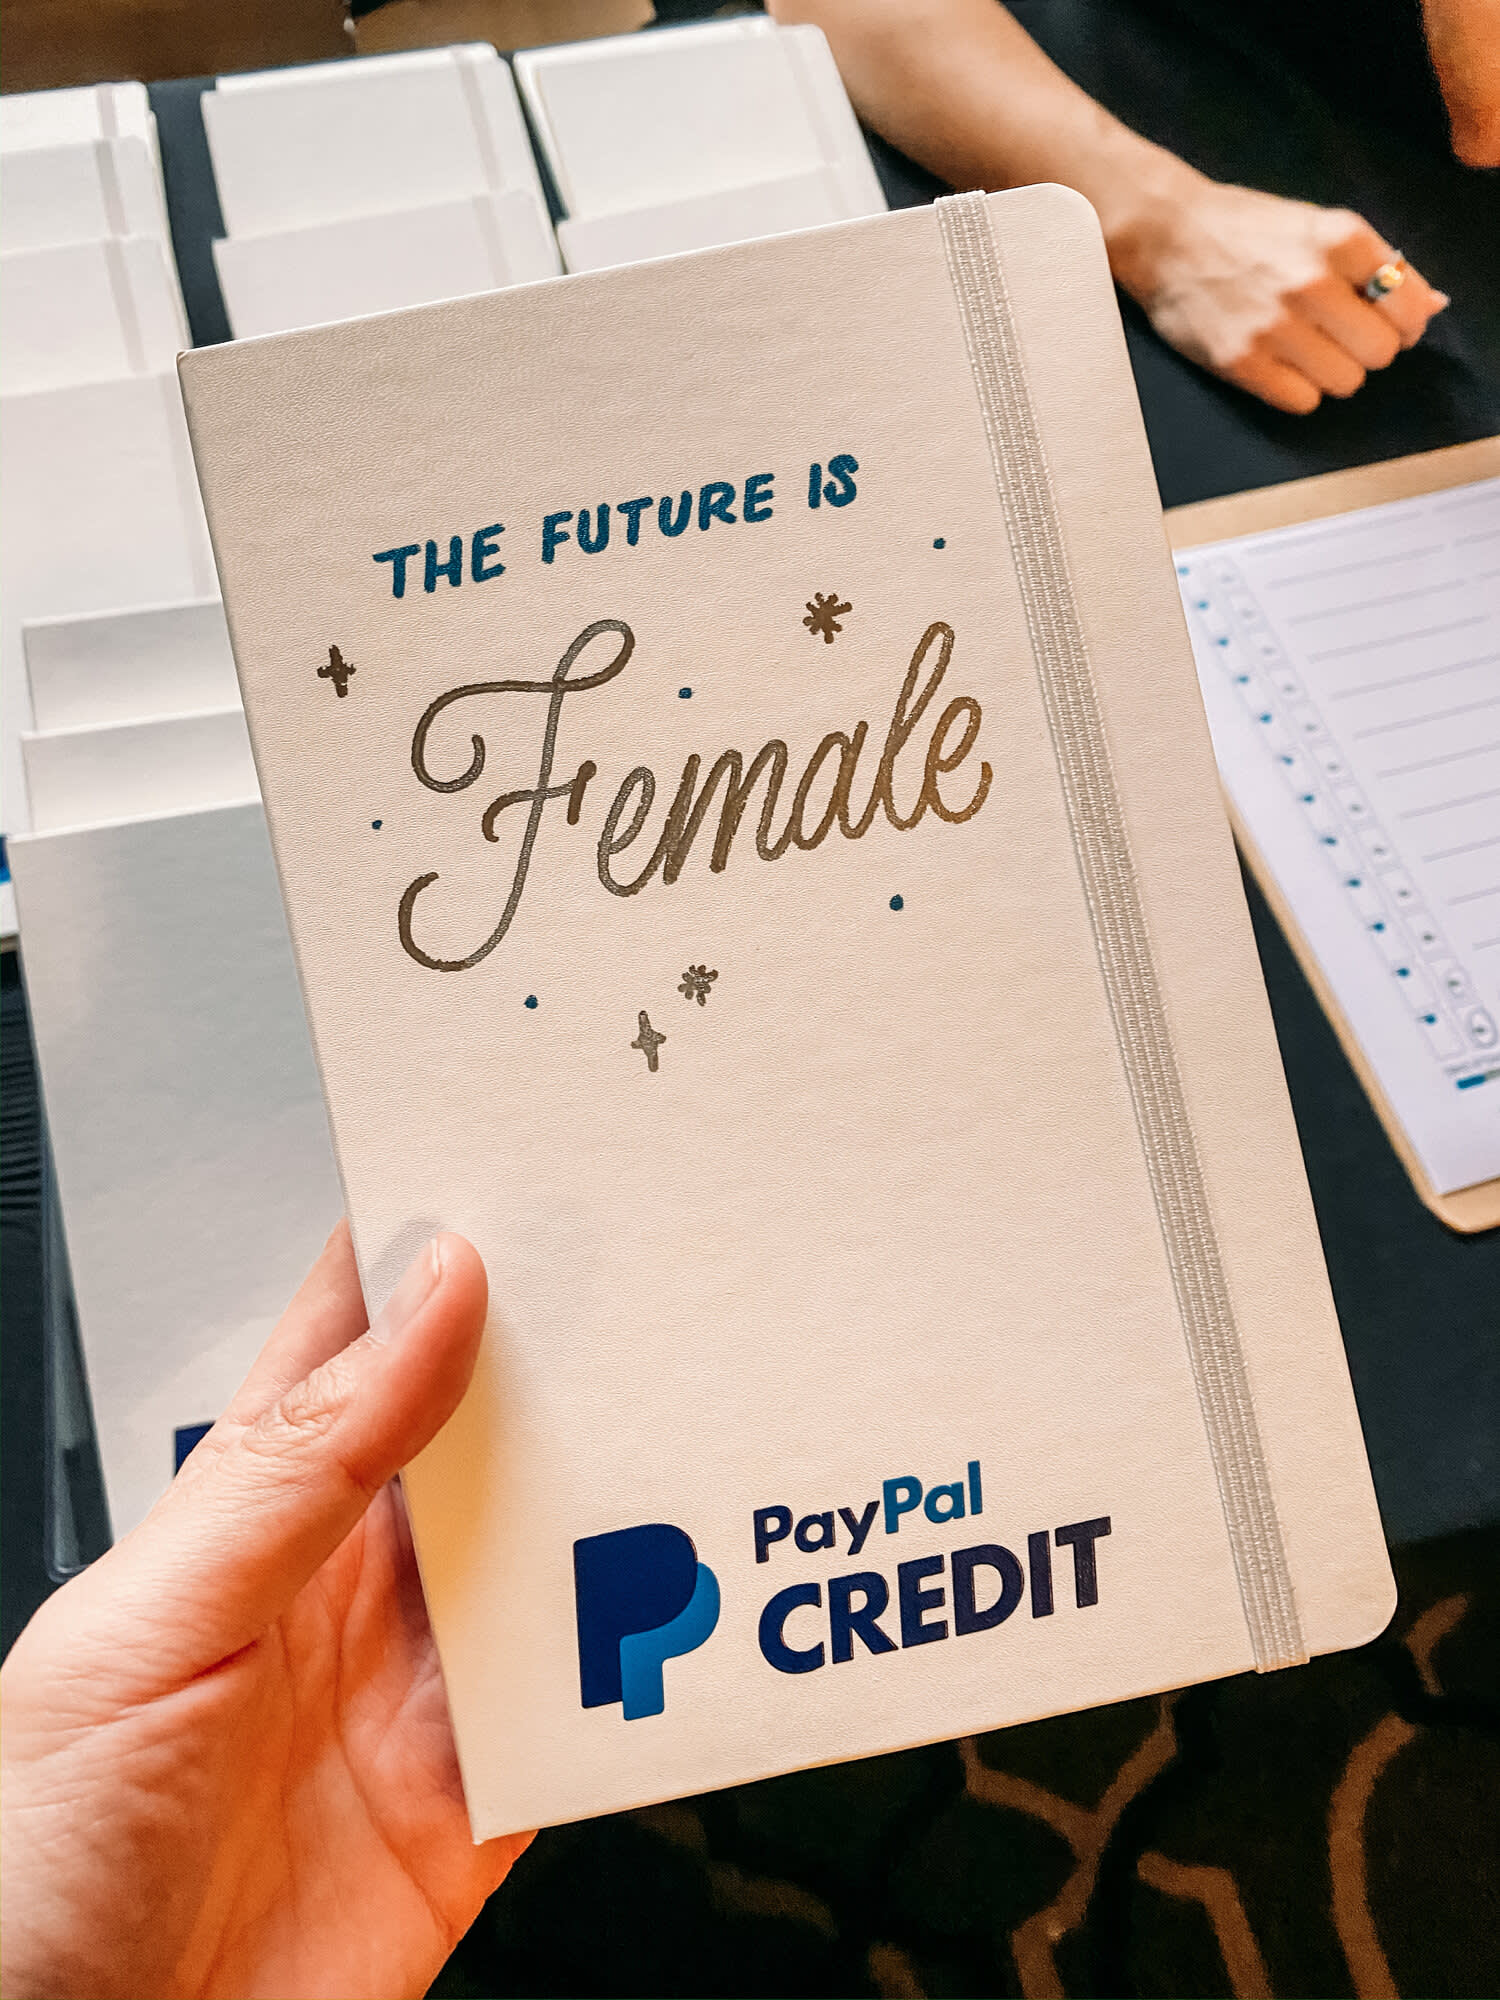 PayPal Credit x Women in Retail